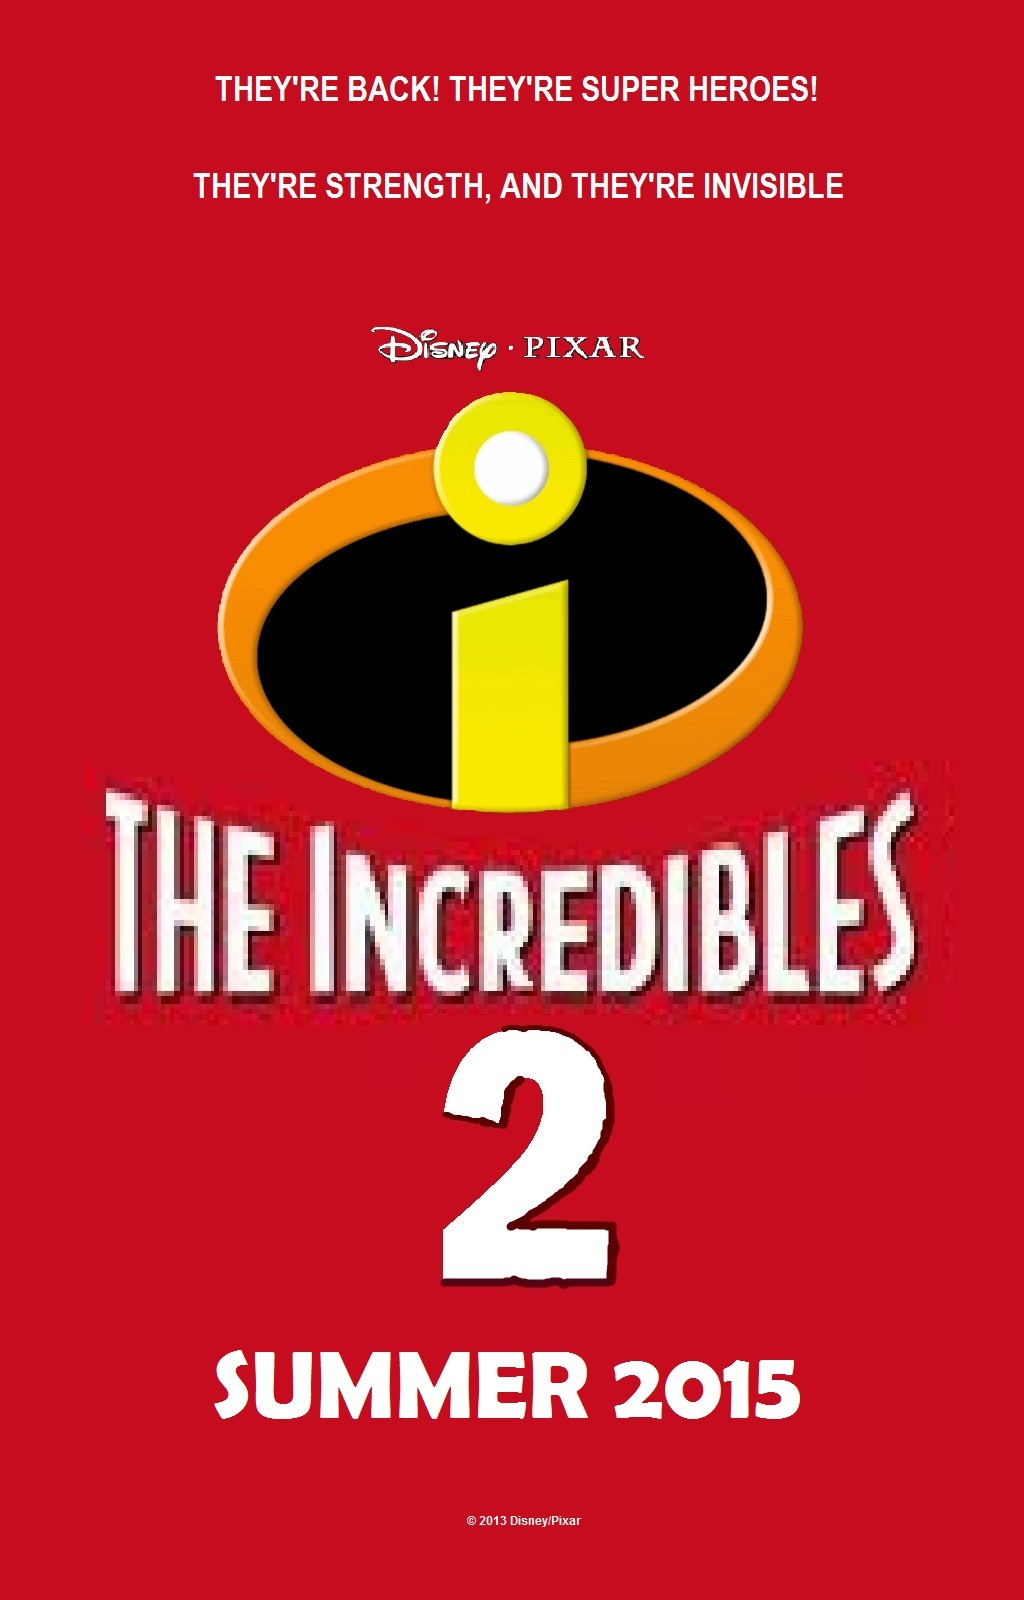 The Incredibles 2 Movie Poster The Incredibles 2 Photo 34239064 Fanpop